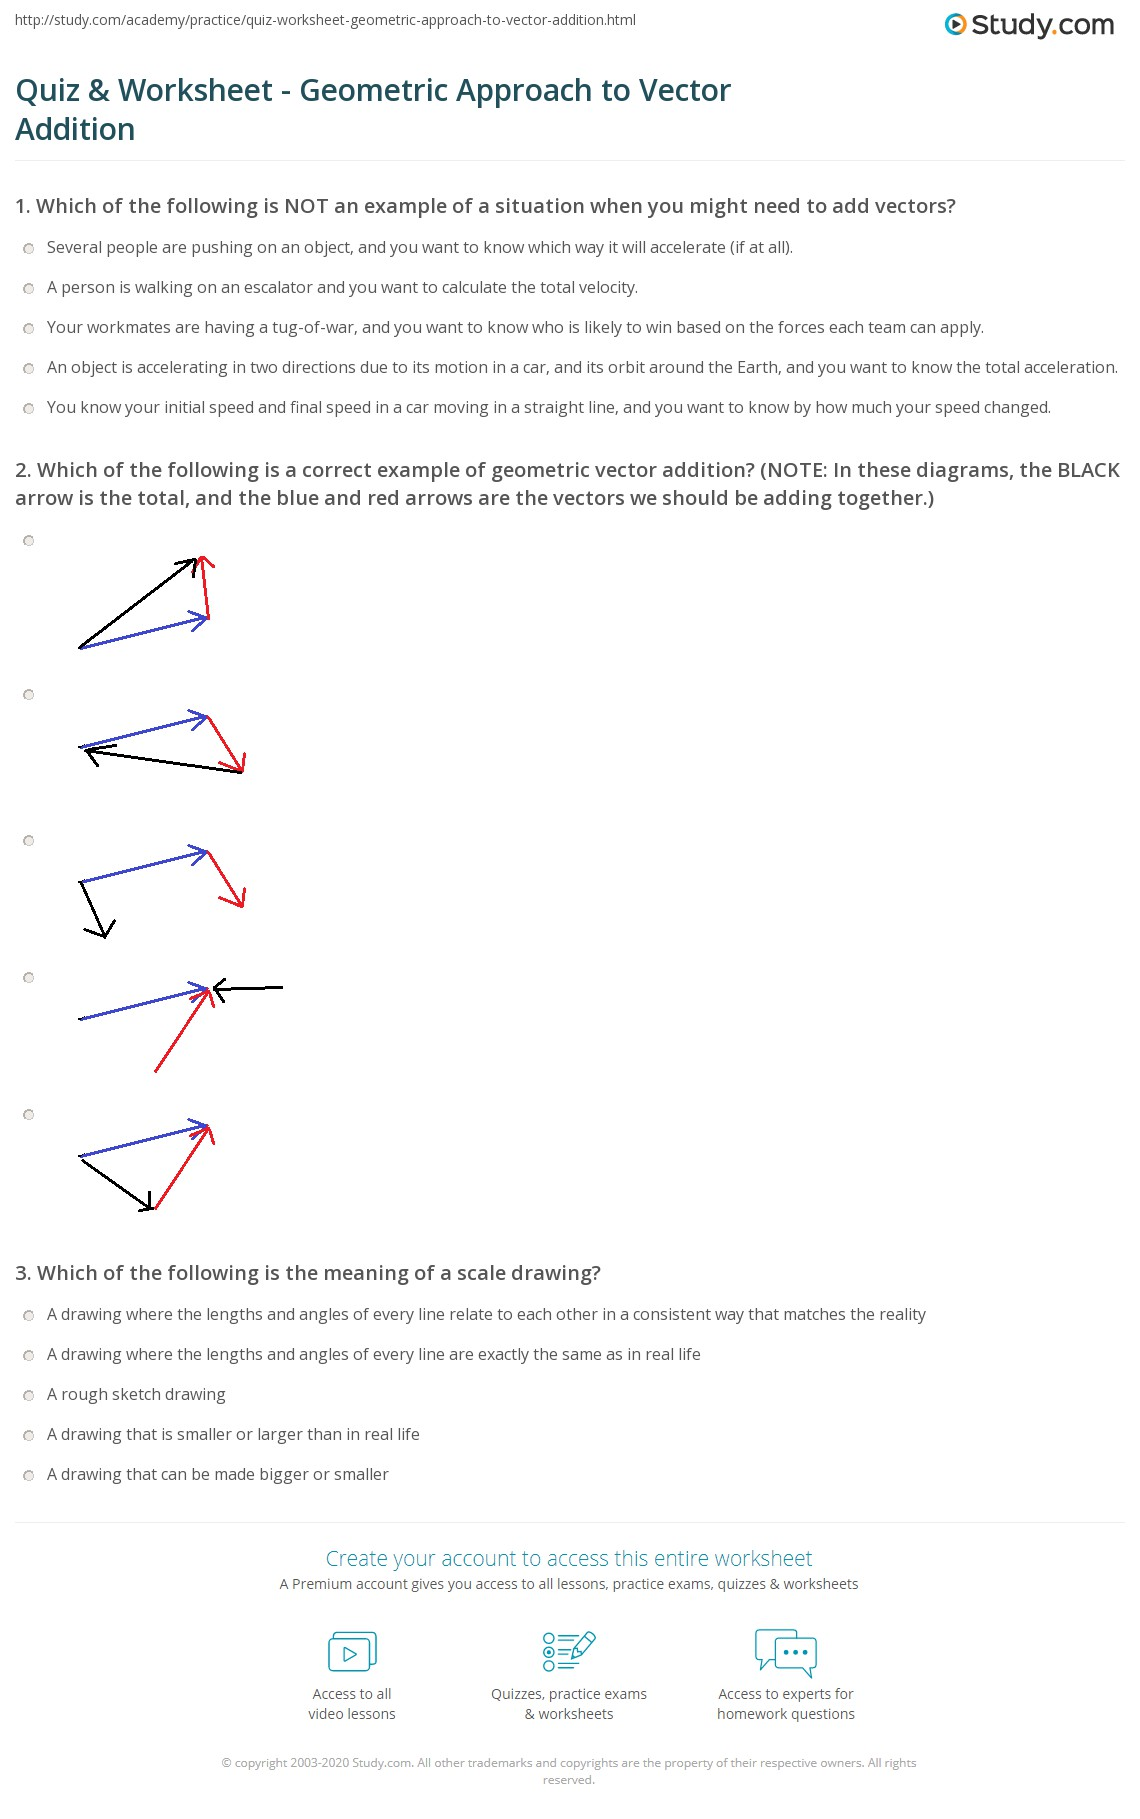 worksheet Vector Worksheet quiz worksheet geometric approach to vector addition study com which of the following is a correct example note in these diagrams black arrow tota